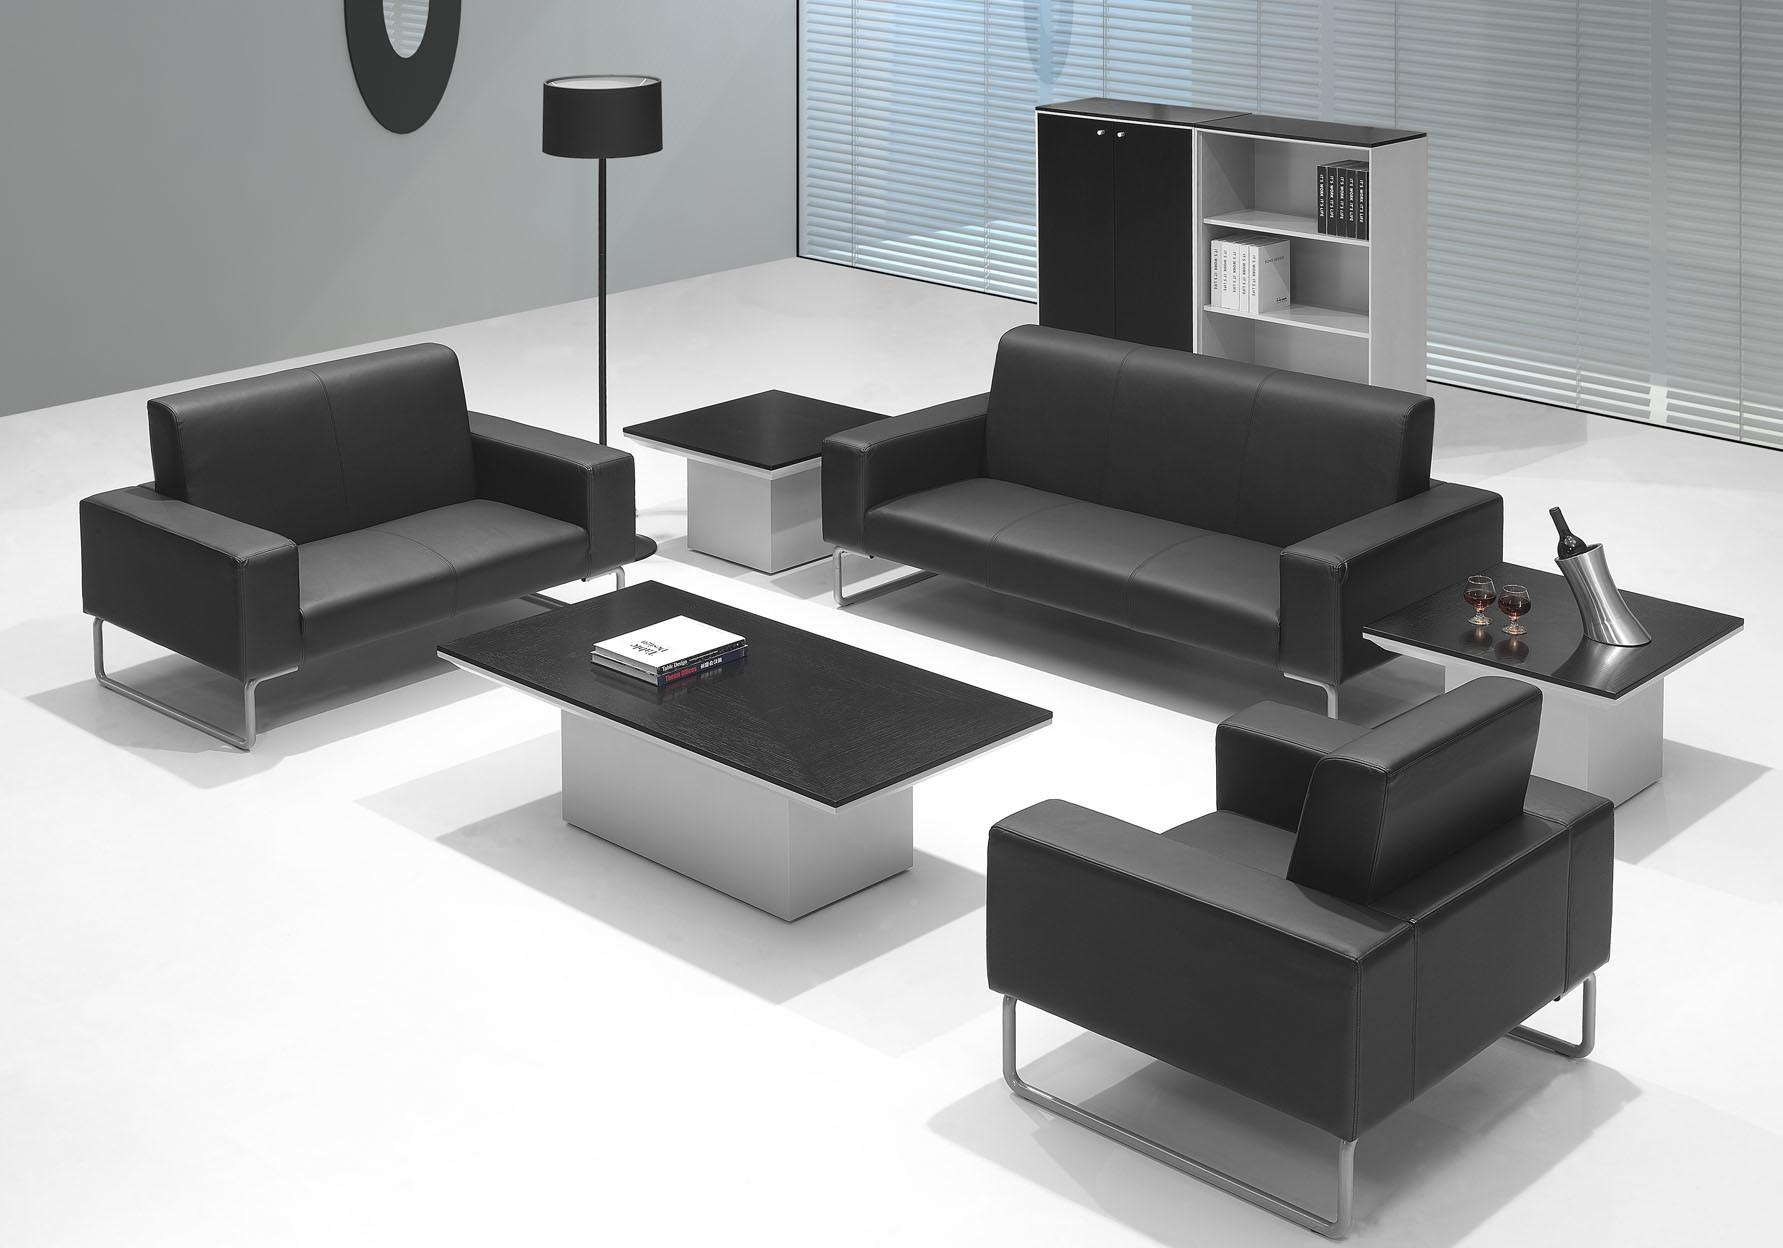 Office Sofa Furniture | Sofa Malaysia Intended For Office Sofa Chairs (Image 15 of 20)